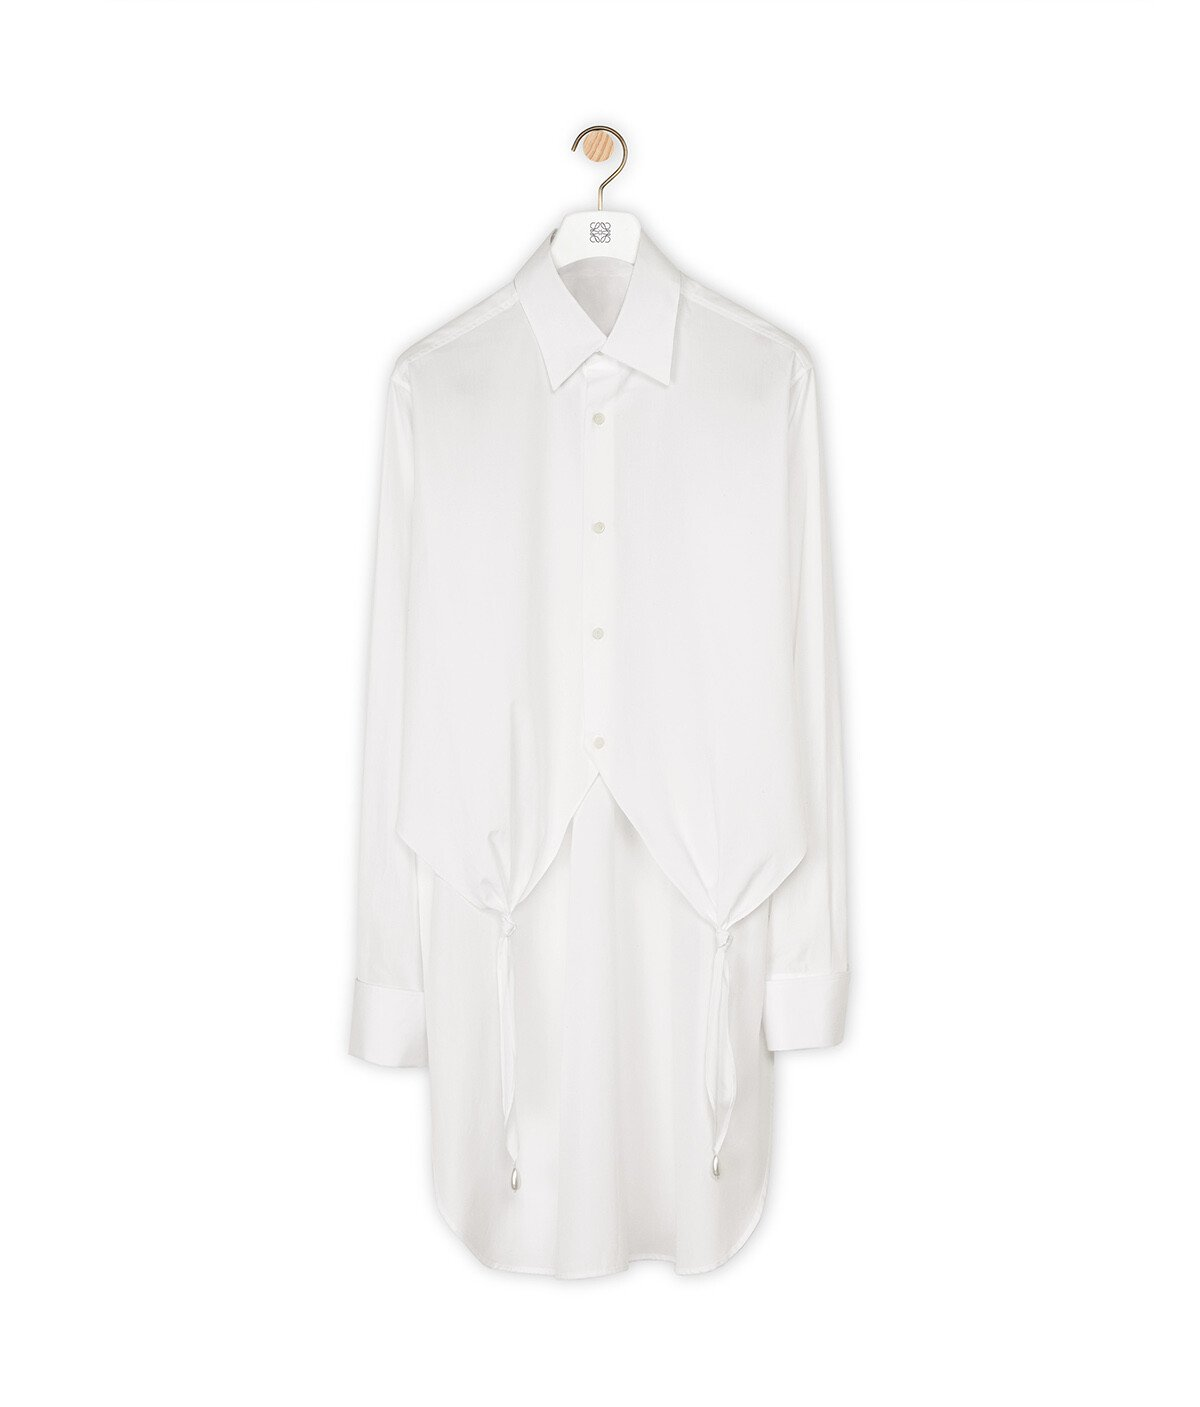 LOEWE Knotted Shirt Blanco front